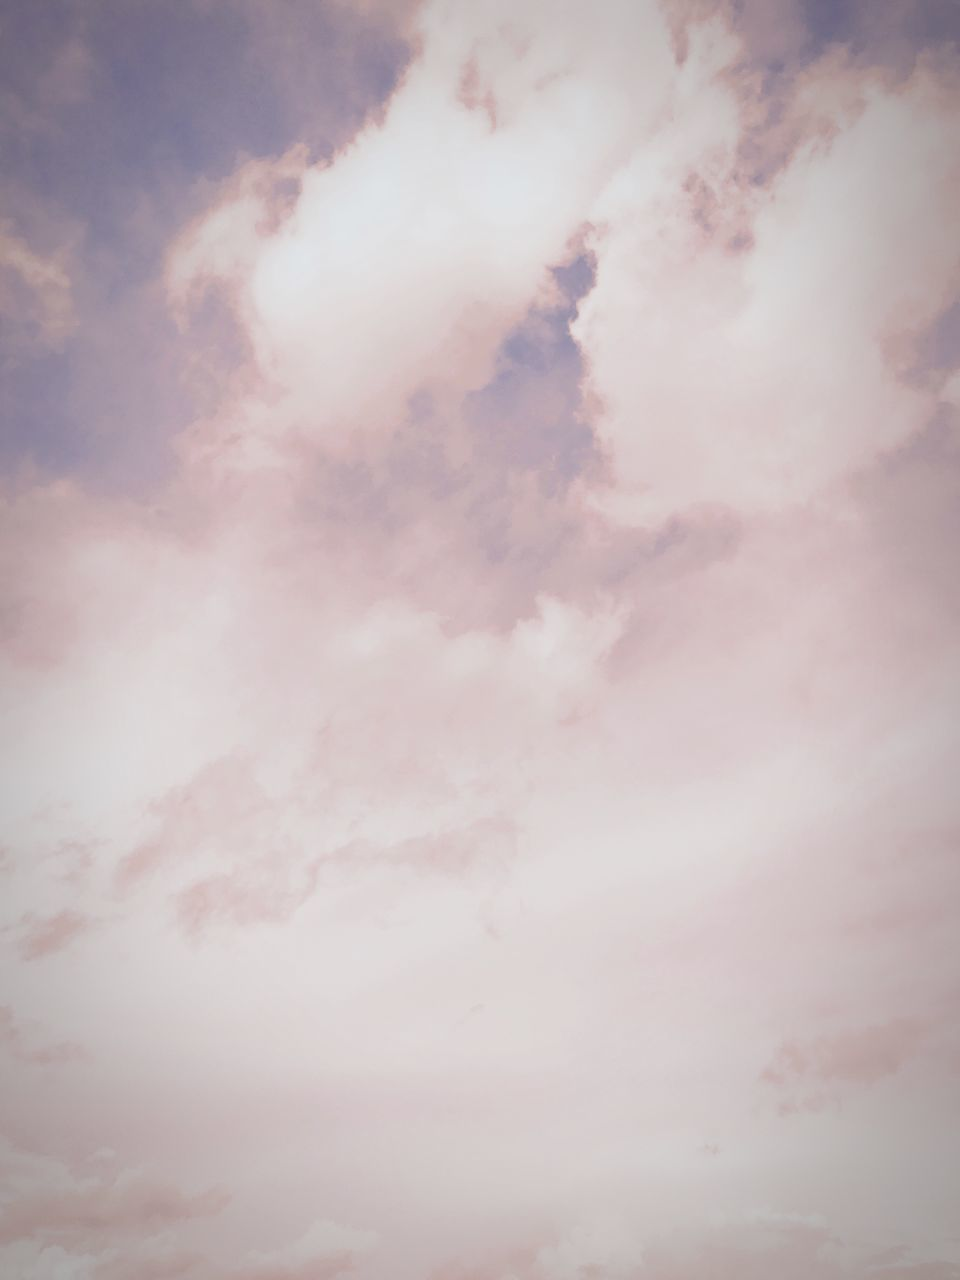 cloud - sky, sky, beauty in nature, nature, low angle view, sky only, cloudscape, scenics, tranquility, majestic, no people, backgrounds, idyllic, outdoors, tranquil scene, day, sunset